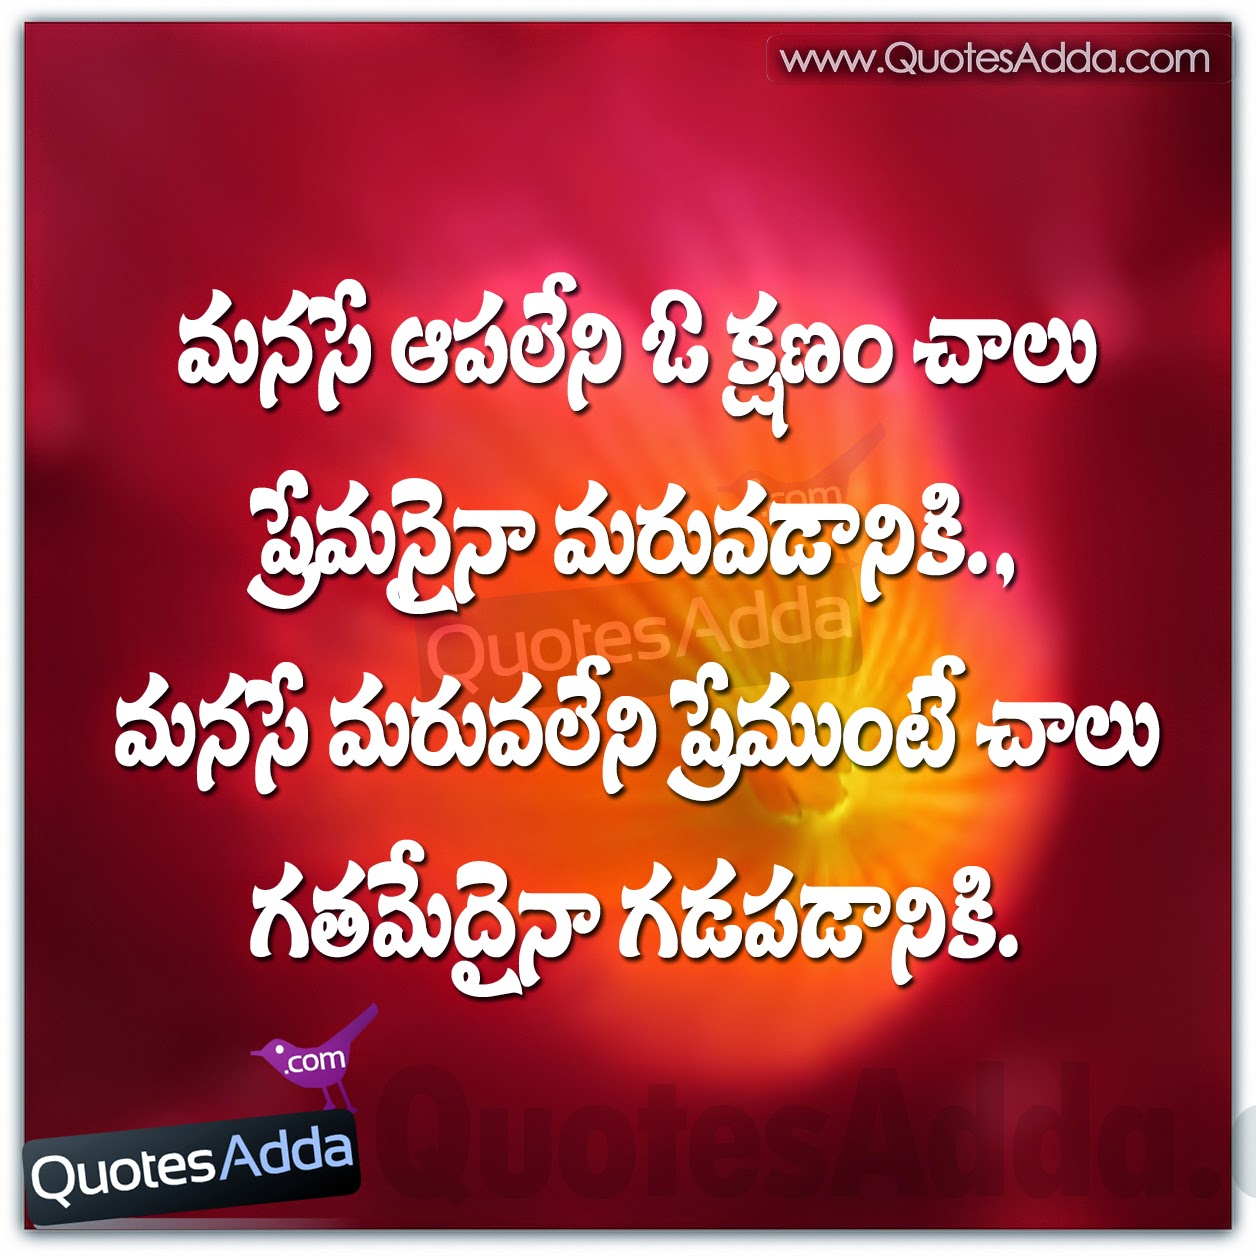 Sad Quotes About Love In Telugu : sms quotesadda telugu quotes tamil quotes hindi quotes Quotes